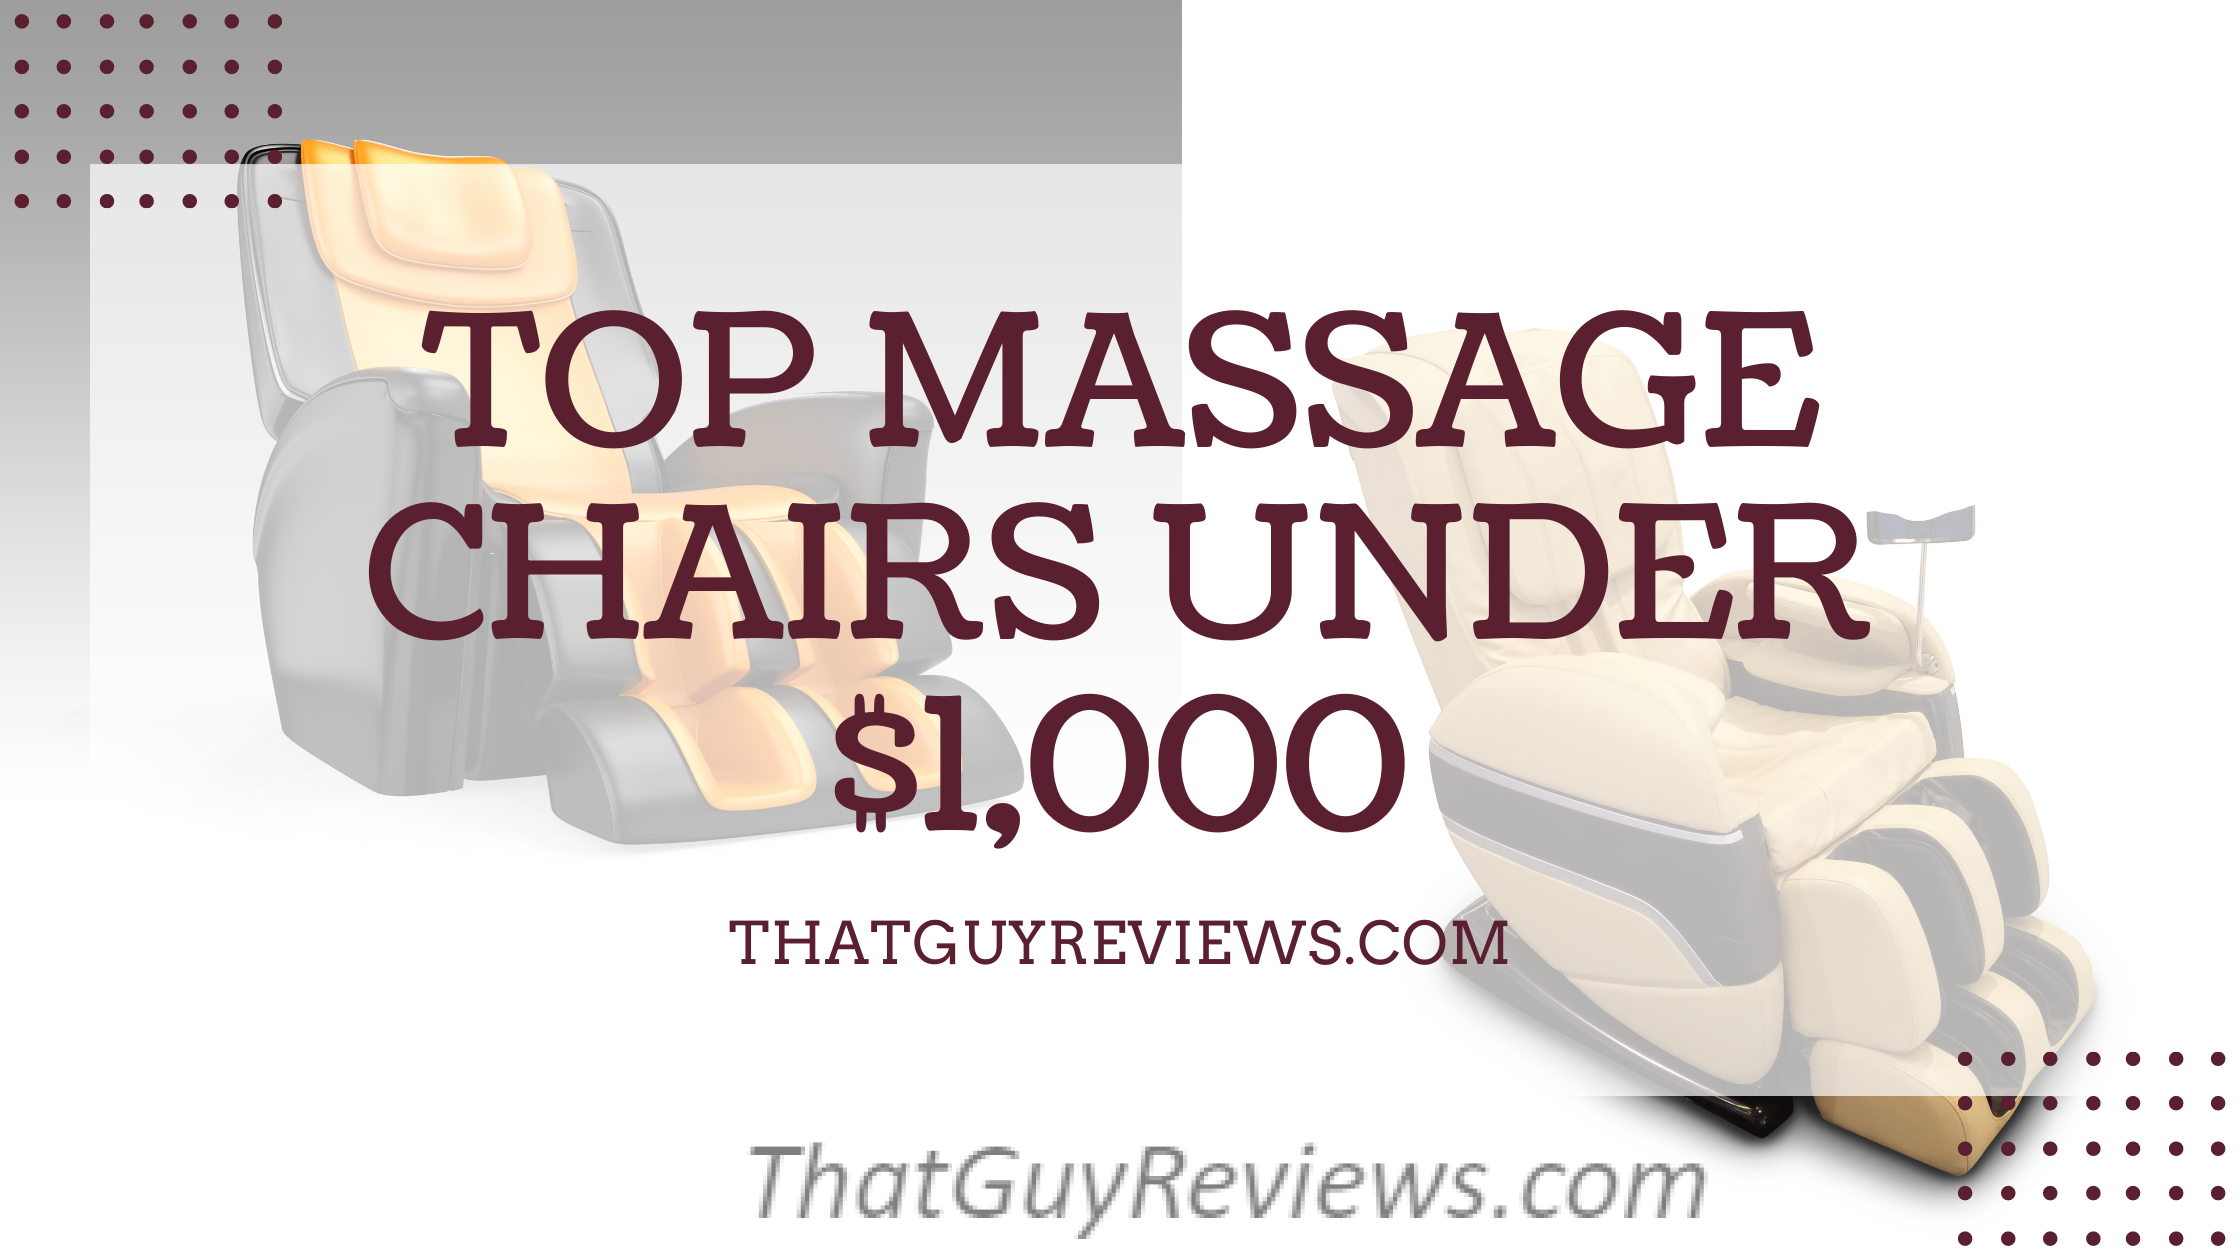 Best Massage Chairs Under $1,000 in 2021